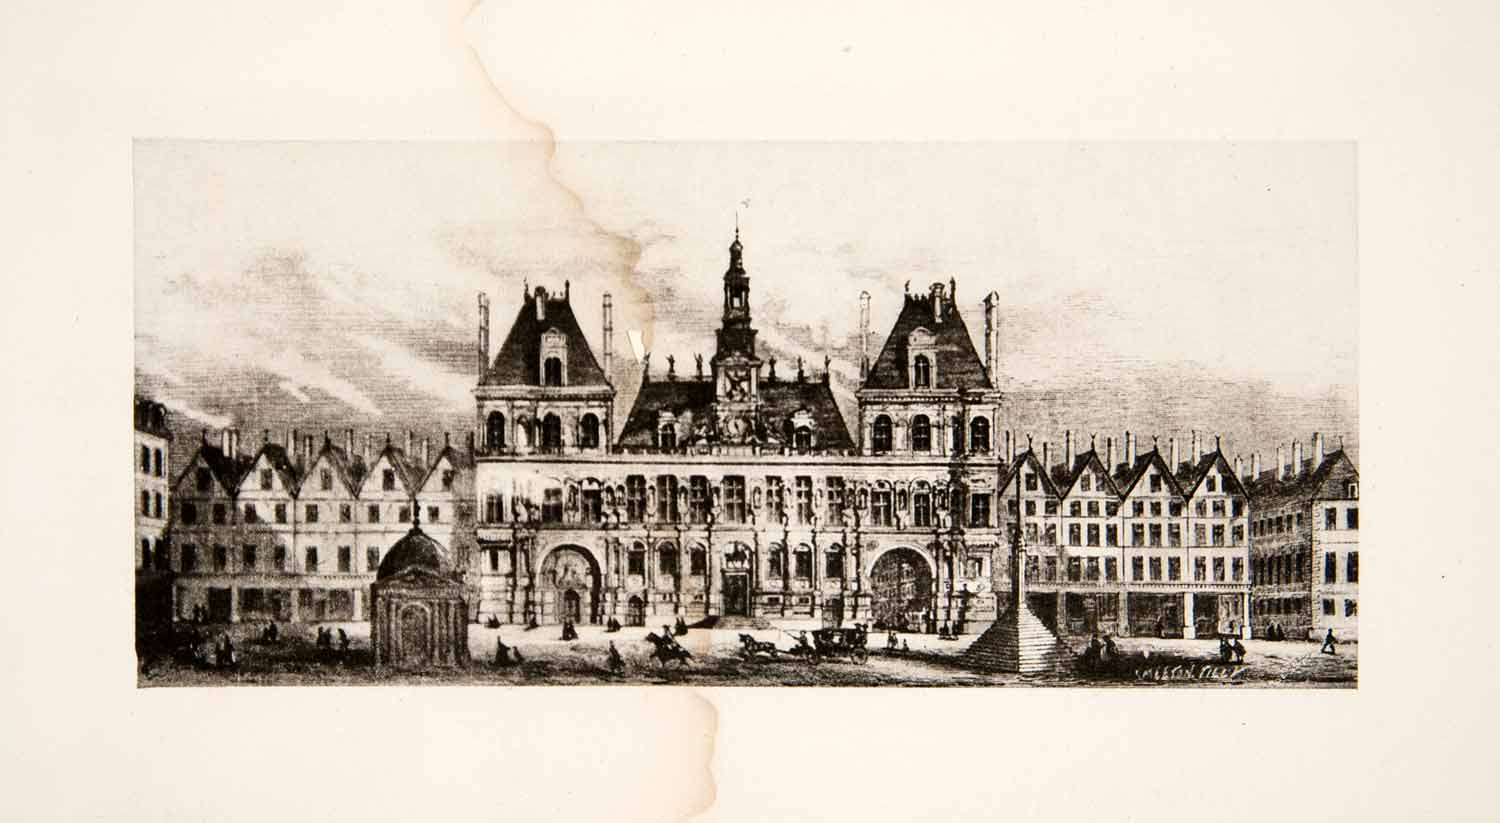 1898 Photogravure Hotel de Ville Paris France Historic Architecture XEY2